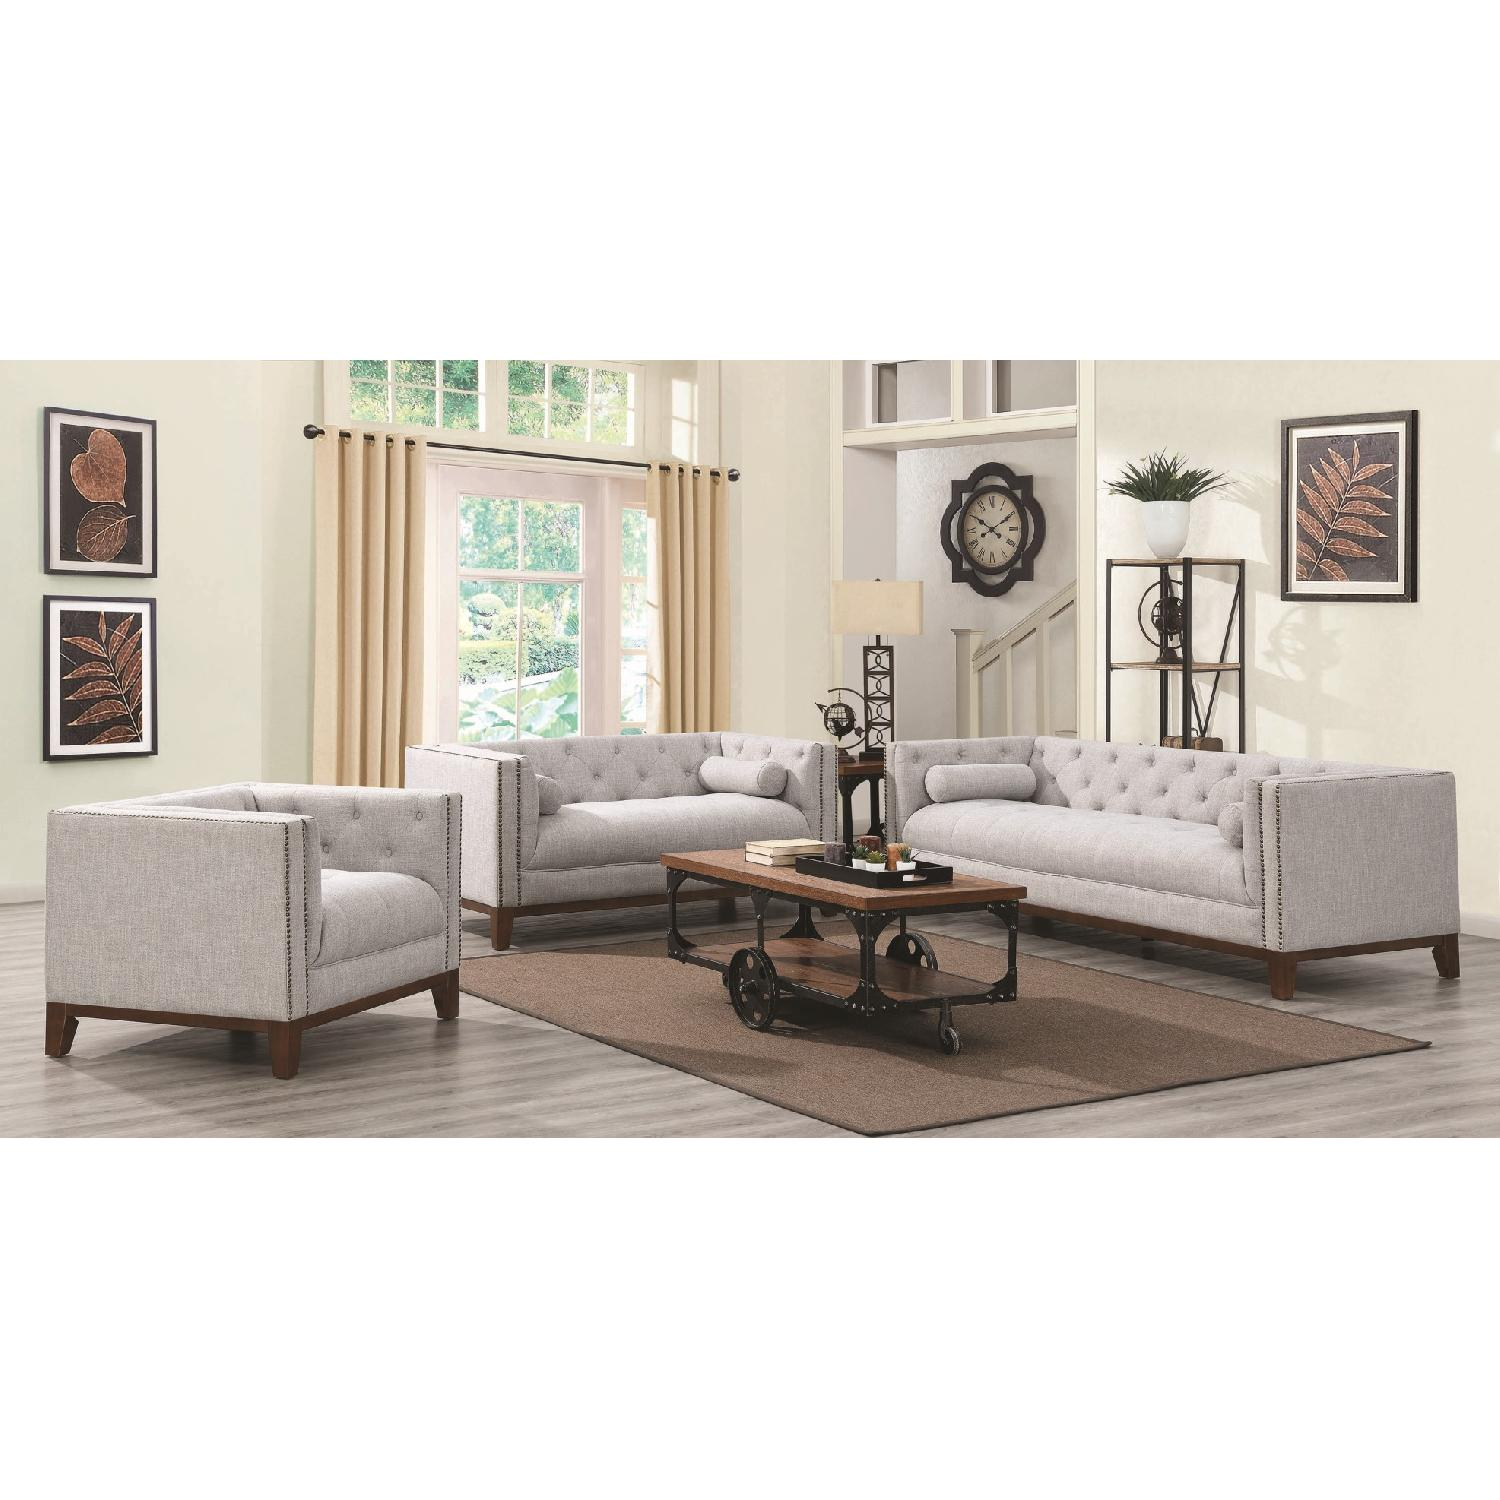 Modern Style Sofa w/ Tufted Buttons & Nailhead Accent - image-2